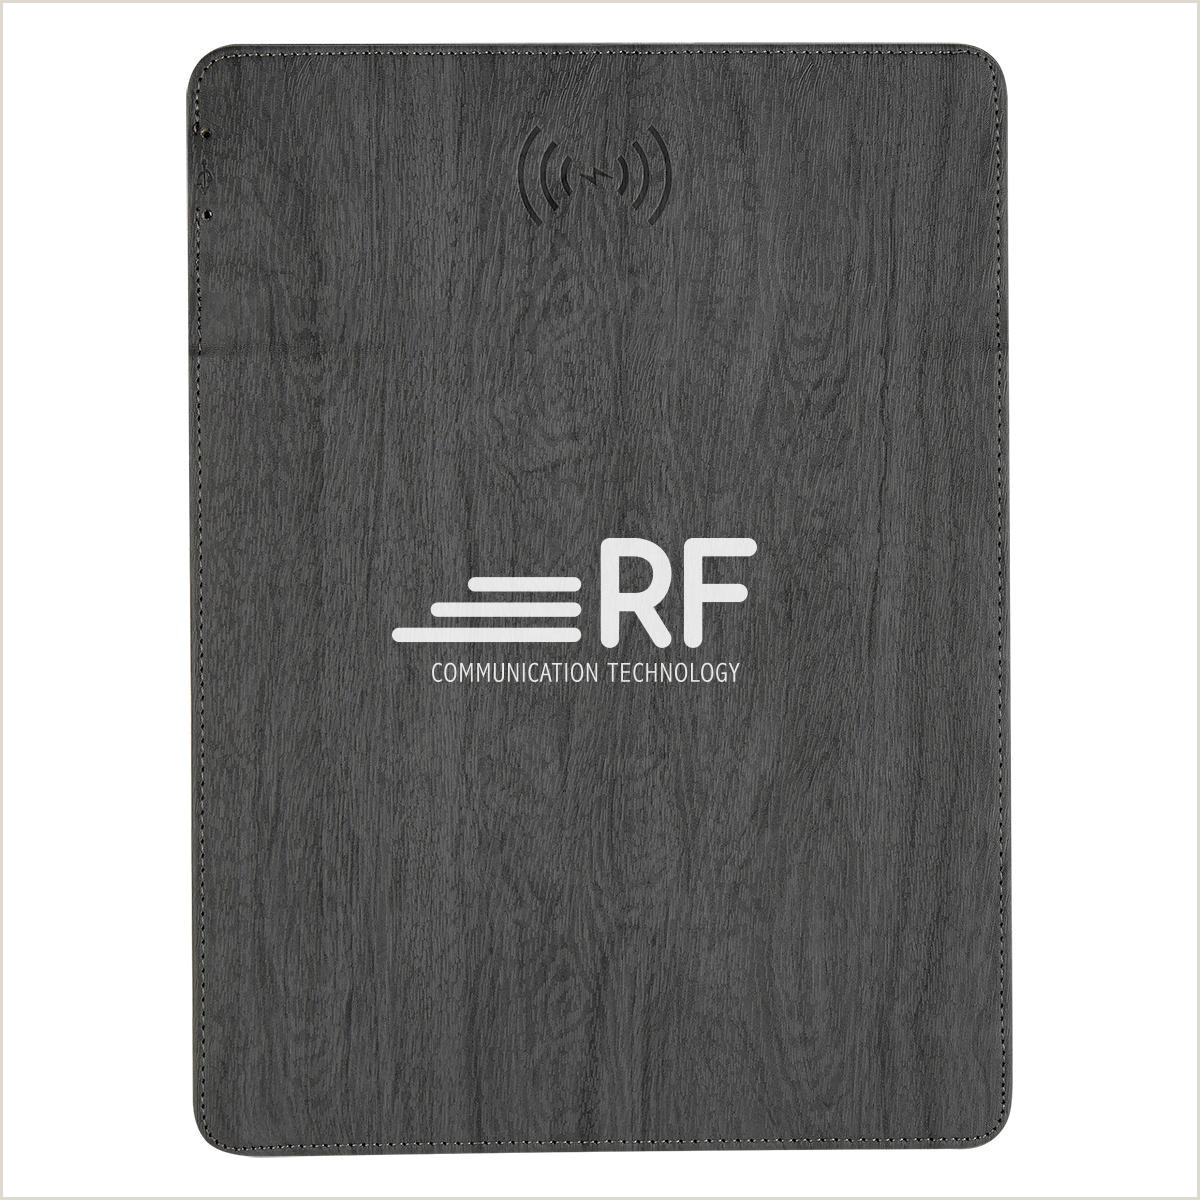 Promo Banner Stands Woodgrain Wireless Charging Mouse Pad With Phone Stand